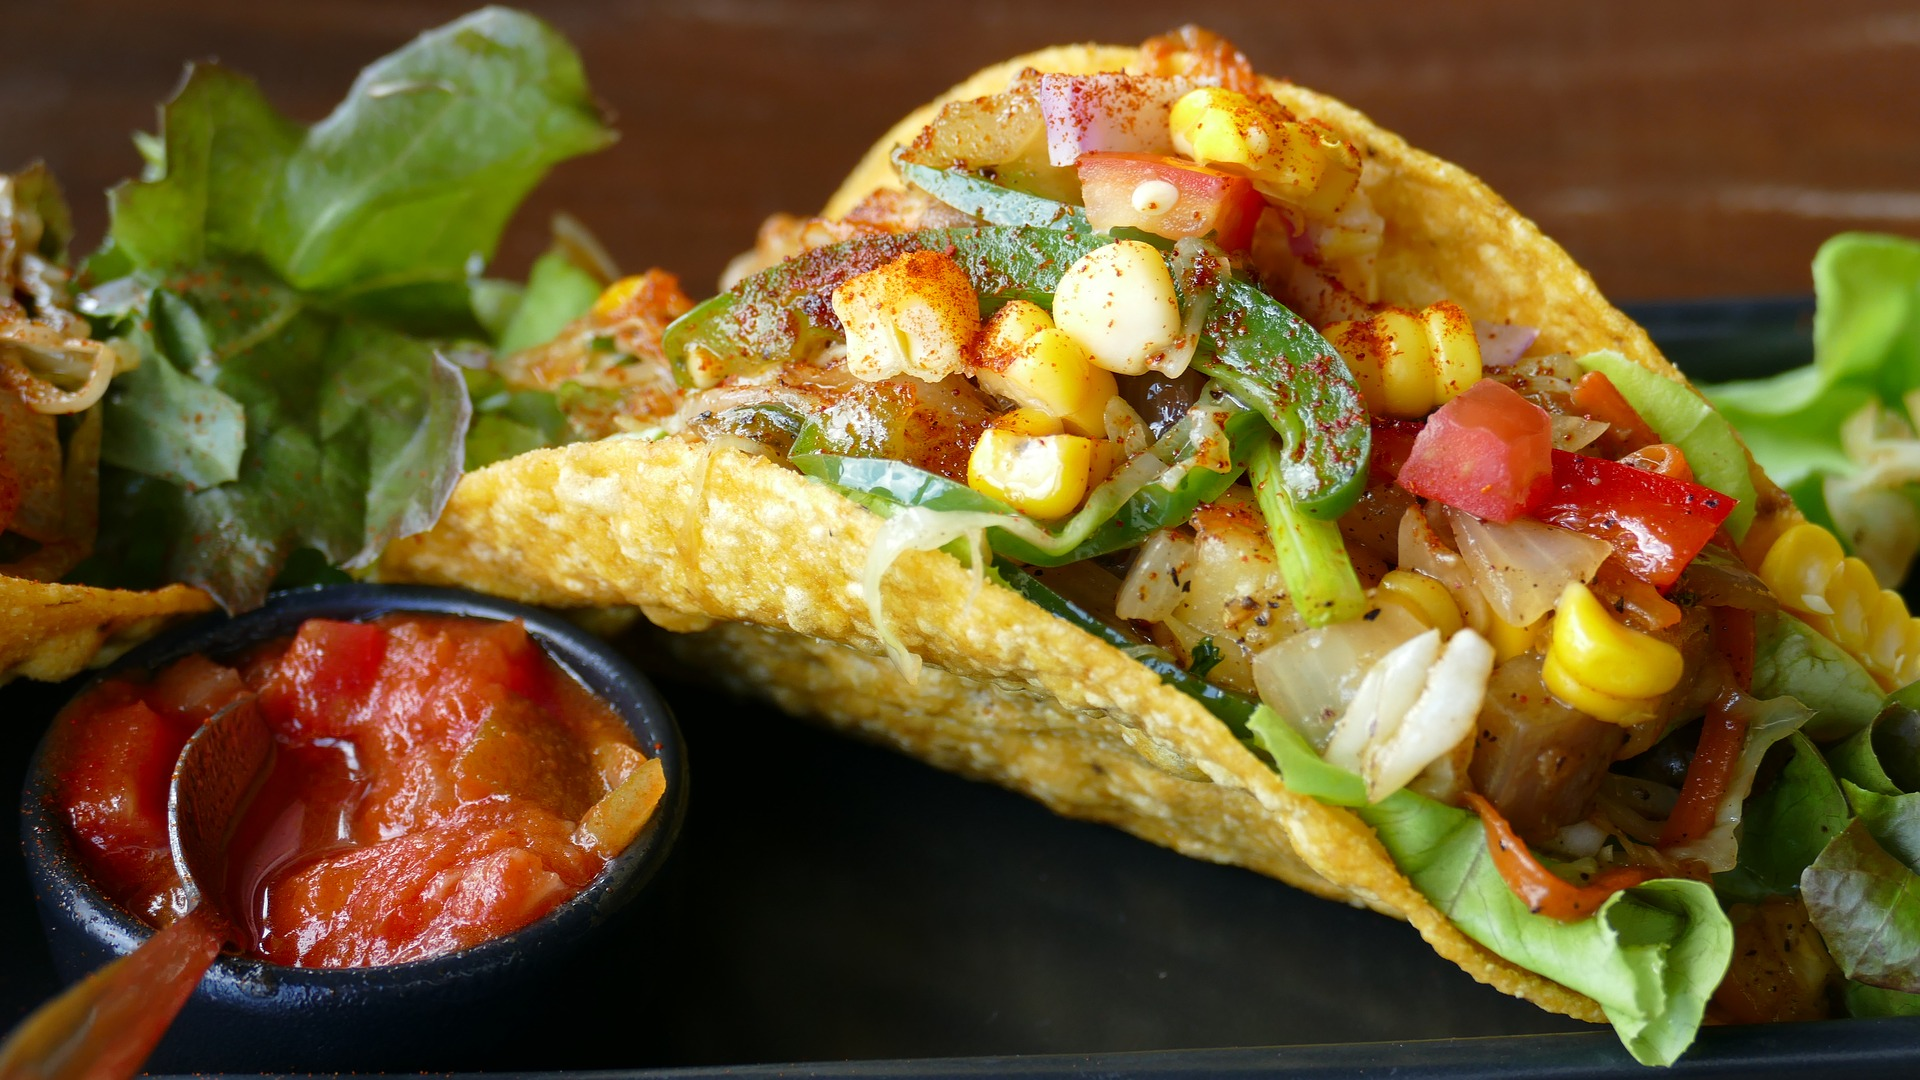 Vegan Mexican Food Slc